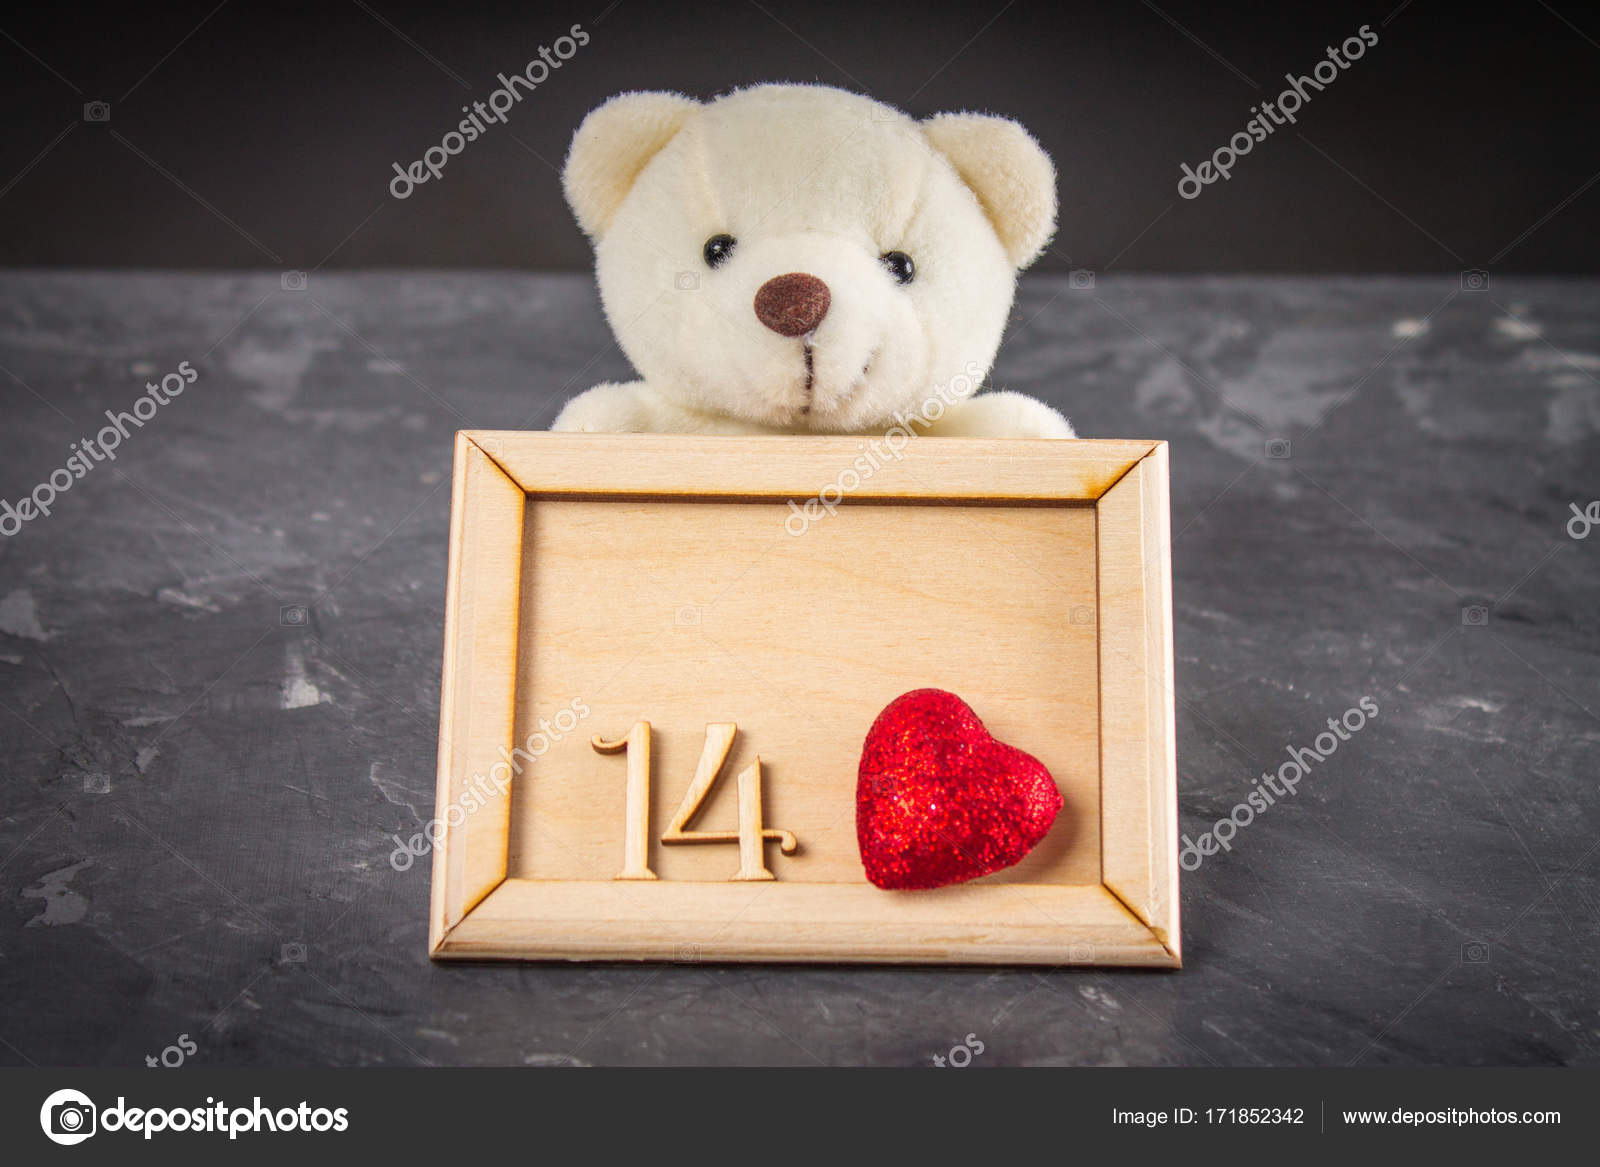 White Teddy Bear Holding A Wooden Frame With The Numbers 14 And